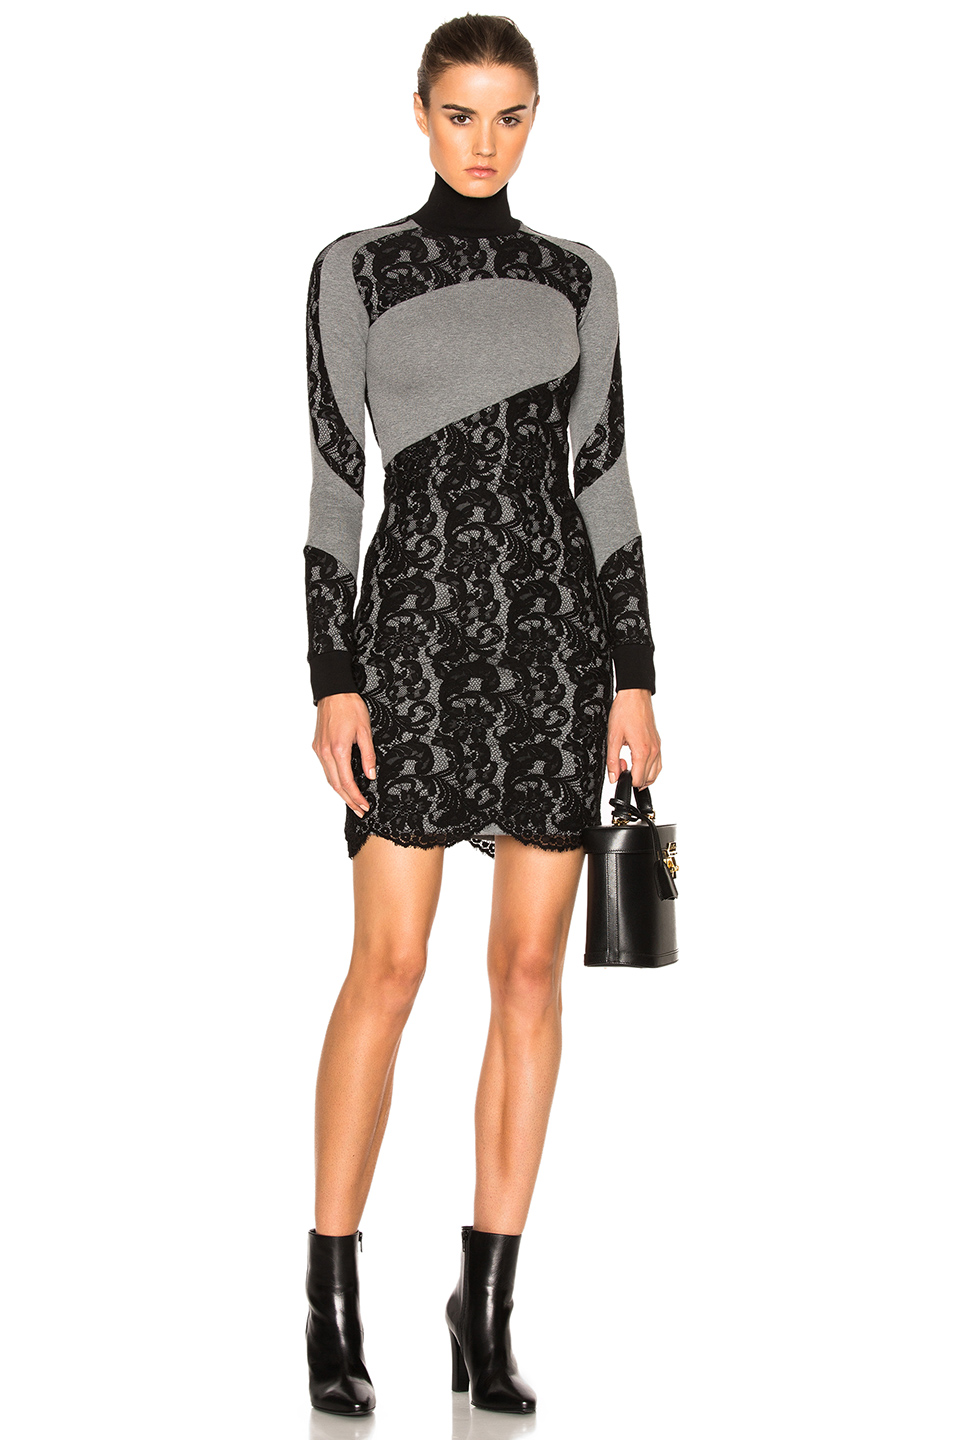 Photo of Carven Sweater Dress in Gray,Black online sales